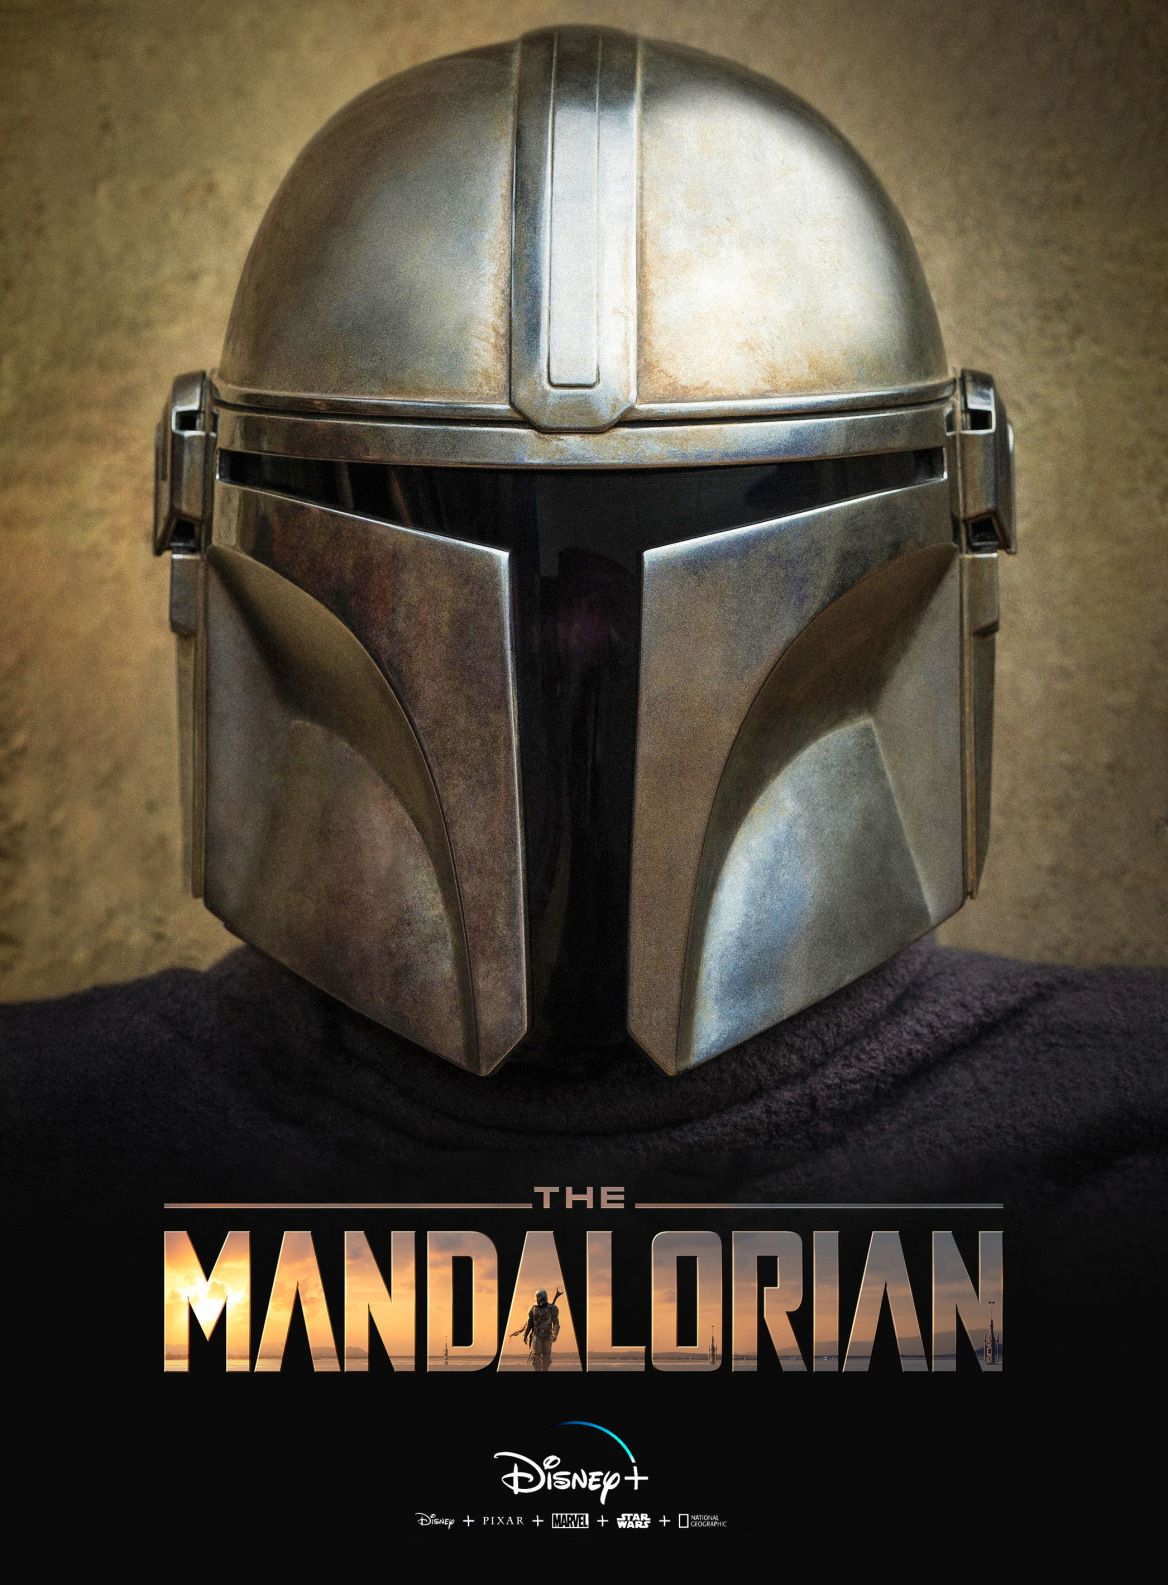 The Mandalorian Entertainment Weekly No Text Cover Fan Edit Star Wars Pictures Star Wars Images Mandalorian Poster